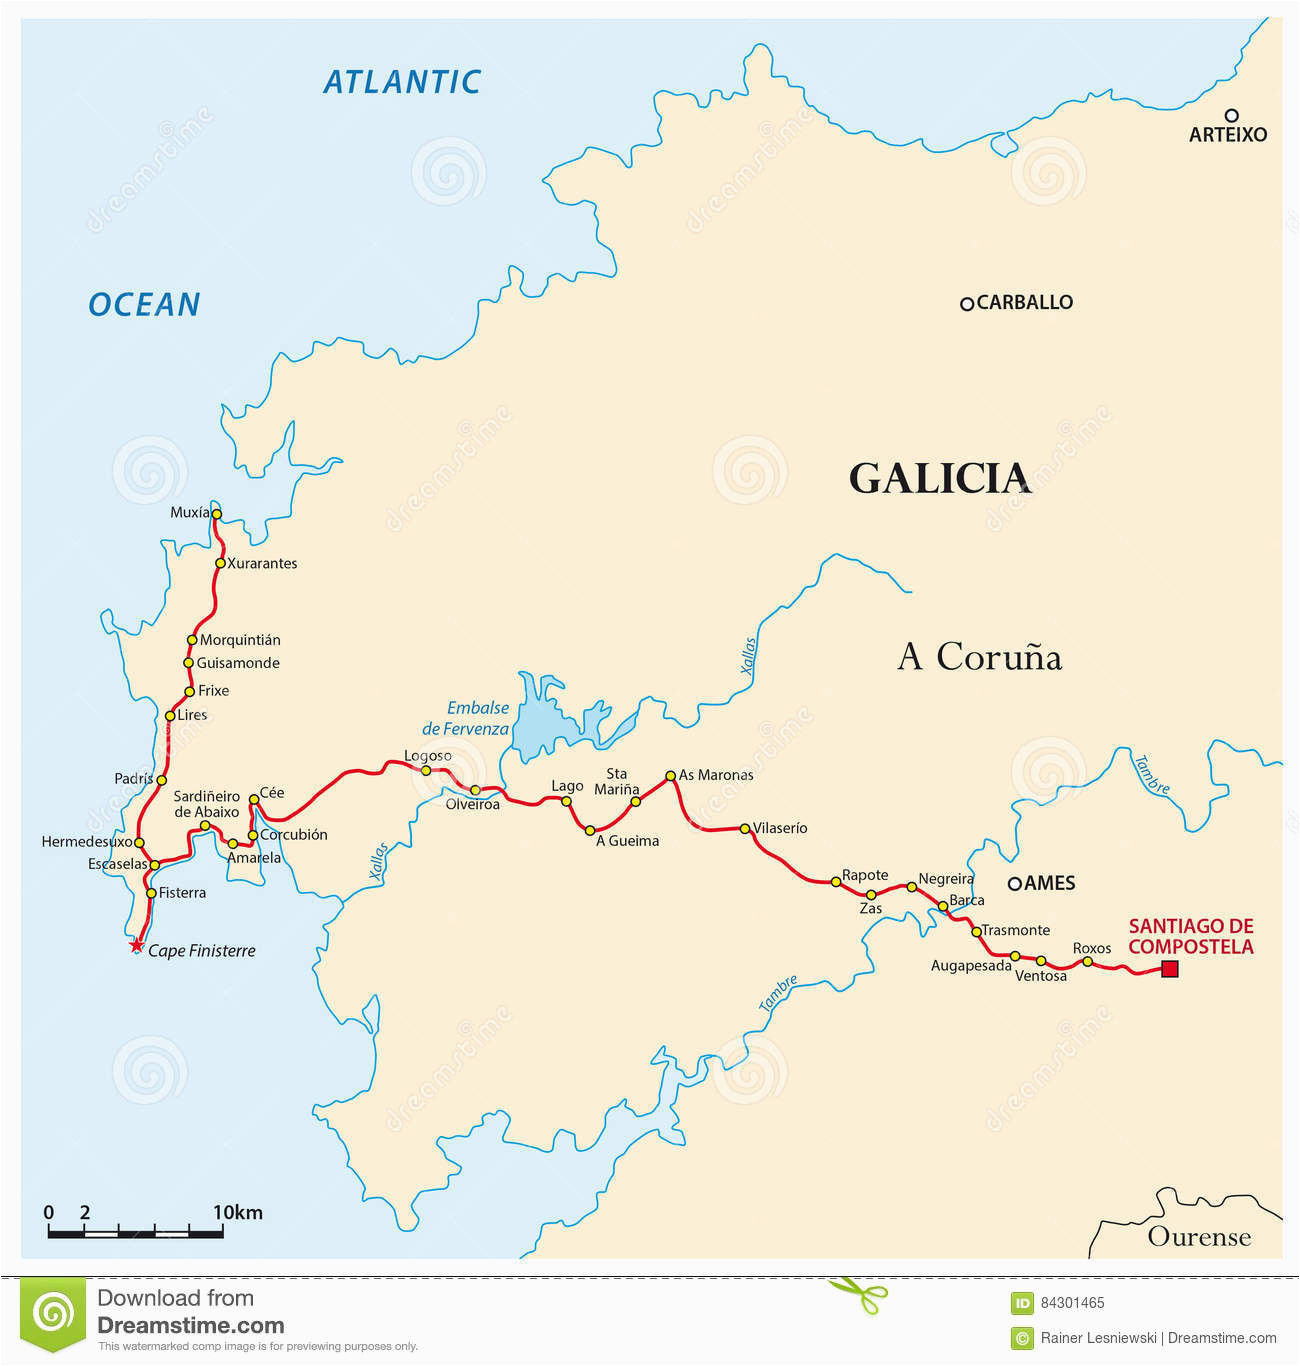 map way of st james from santiago de compostela to cape finisterre